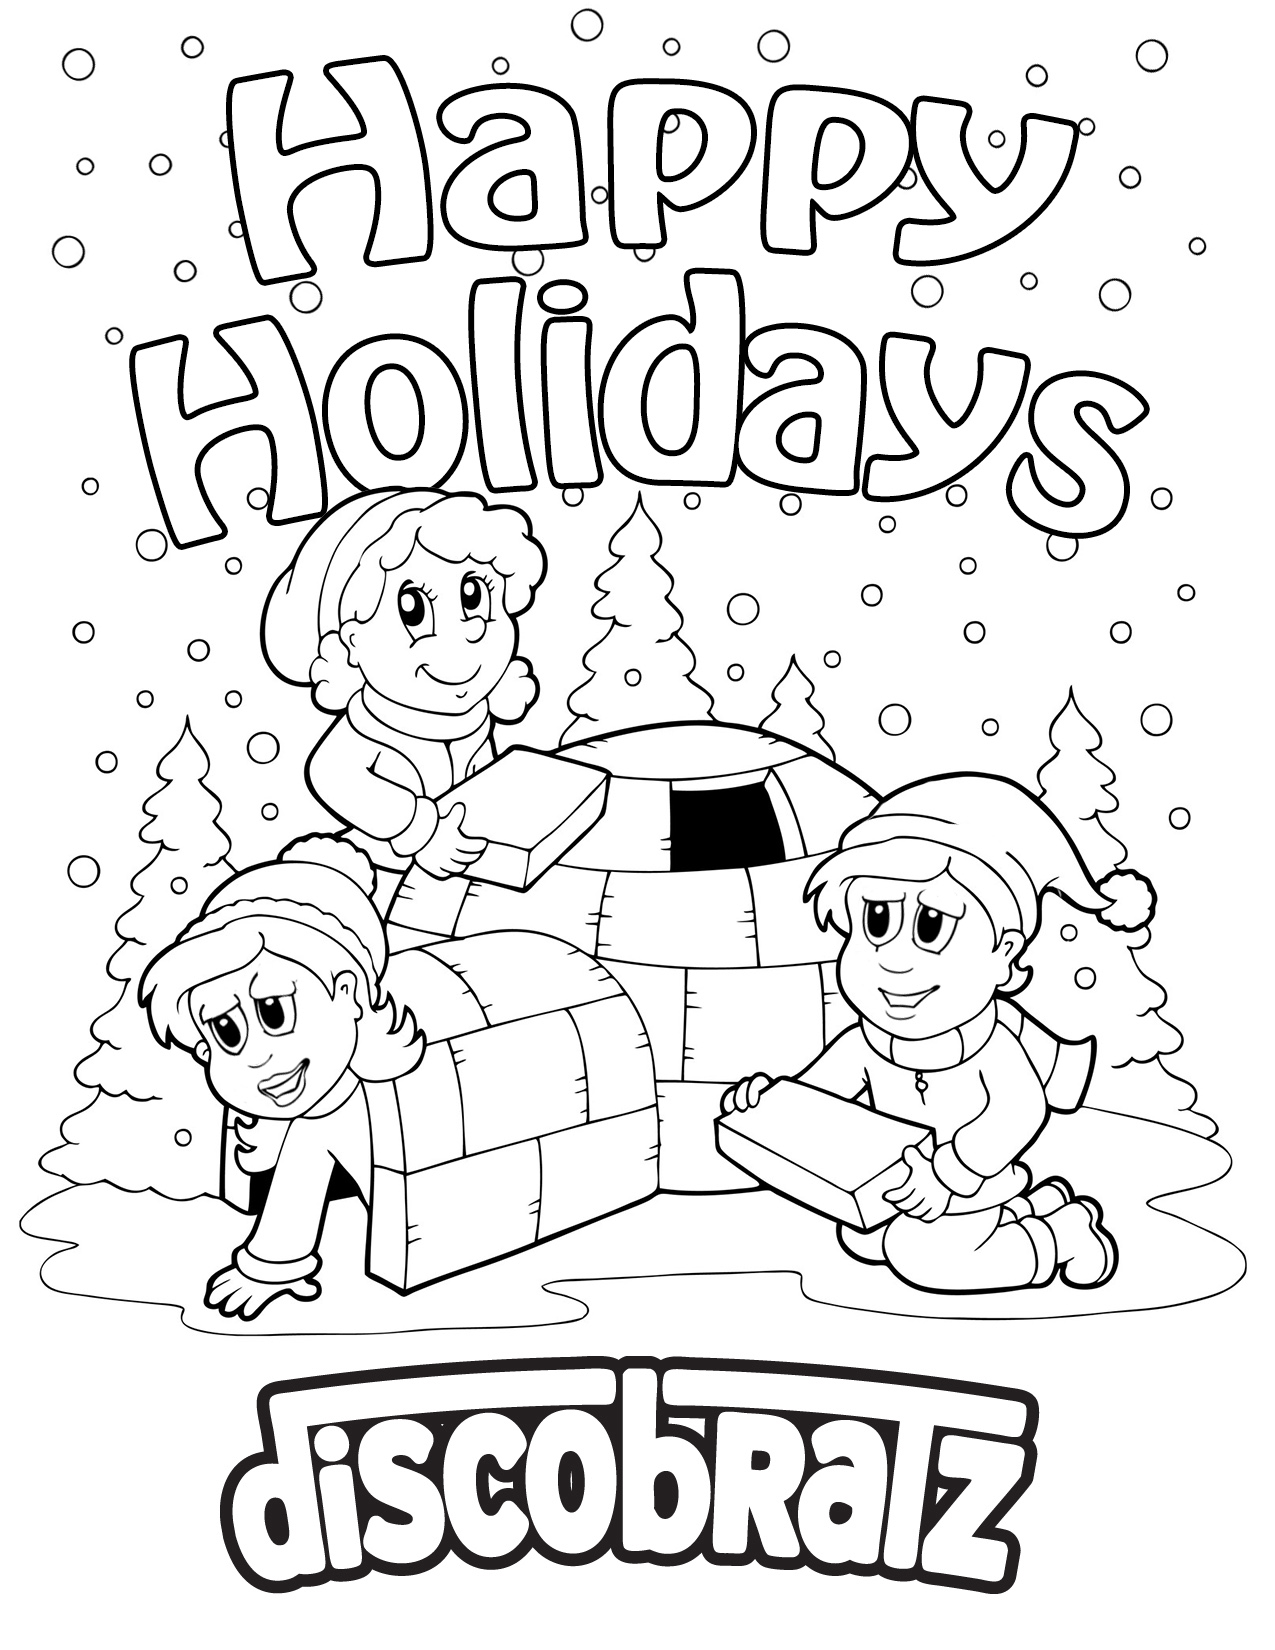 discobratz welcomes the winter weather with a holiday coloring page